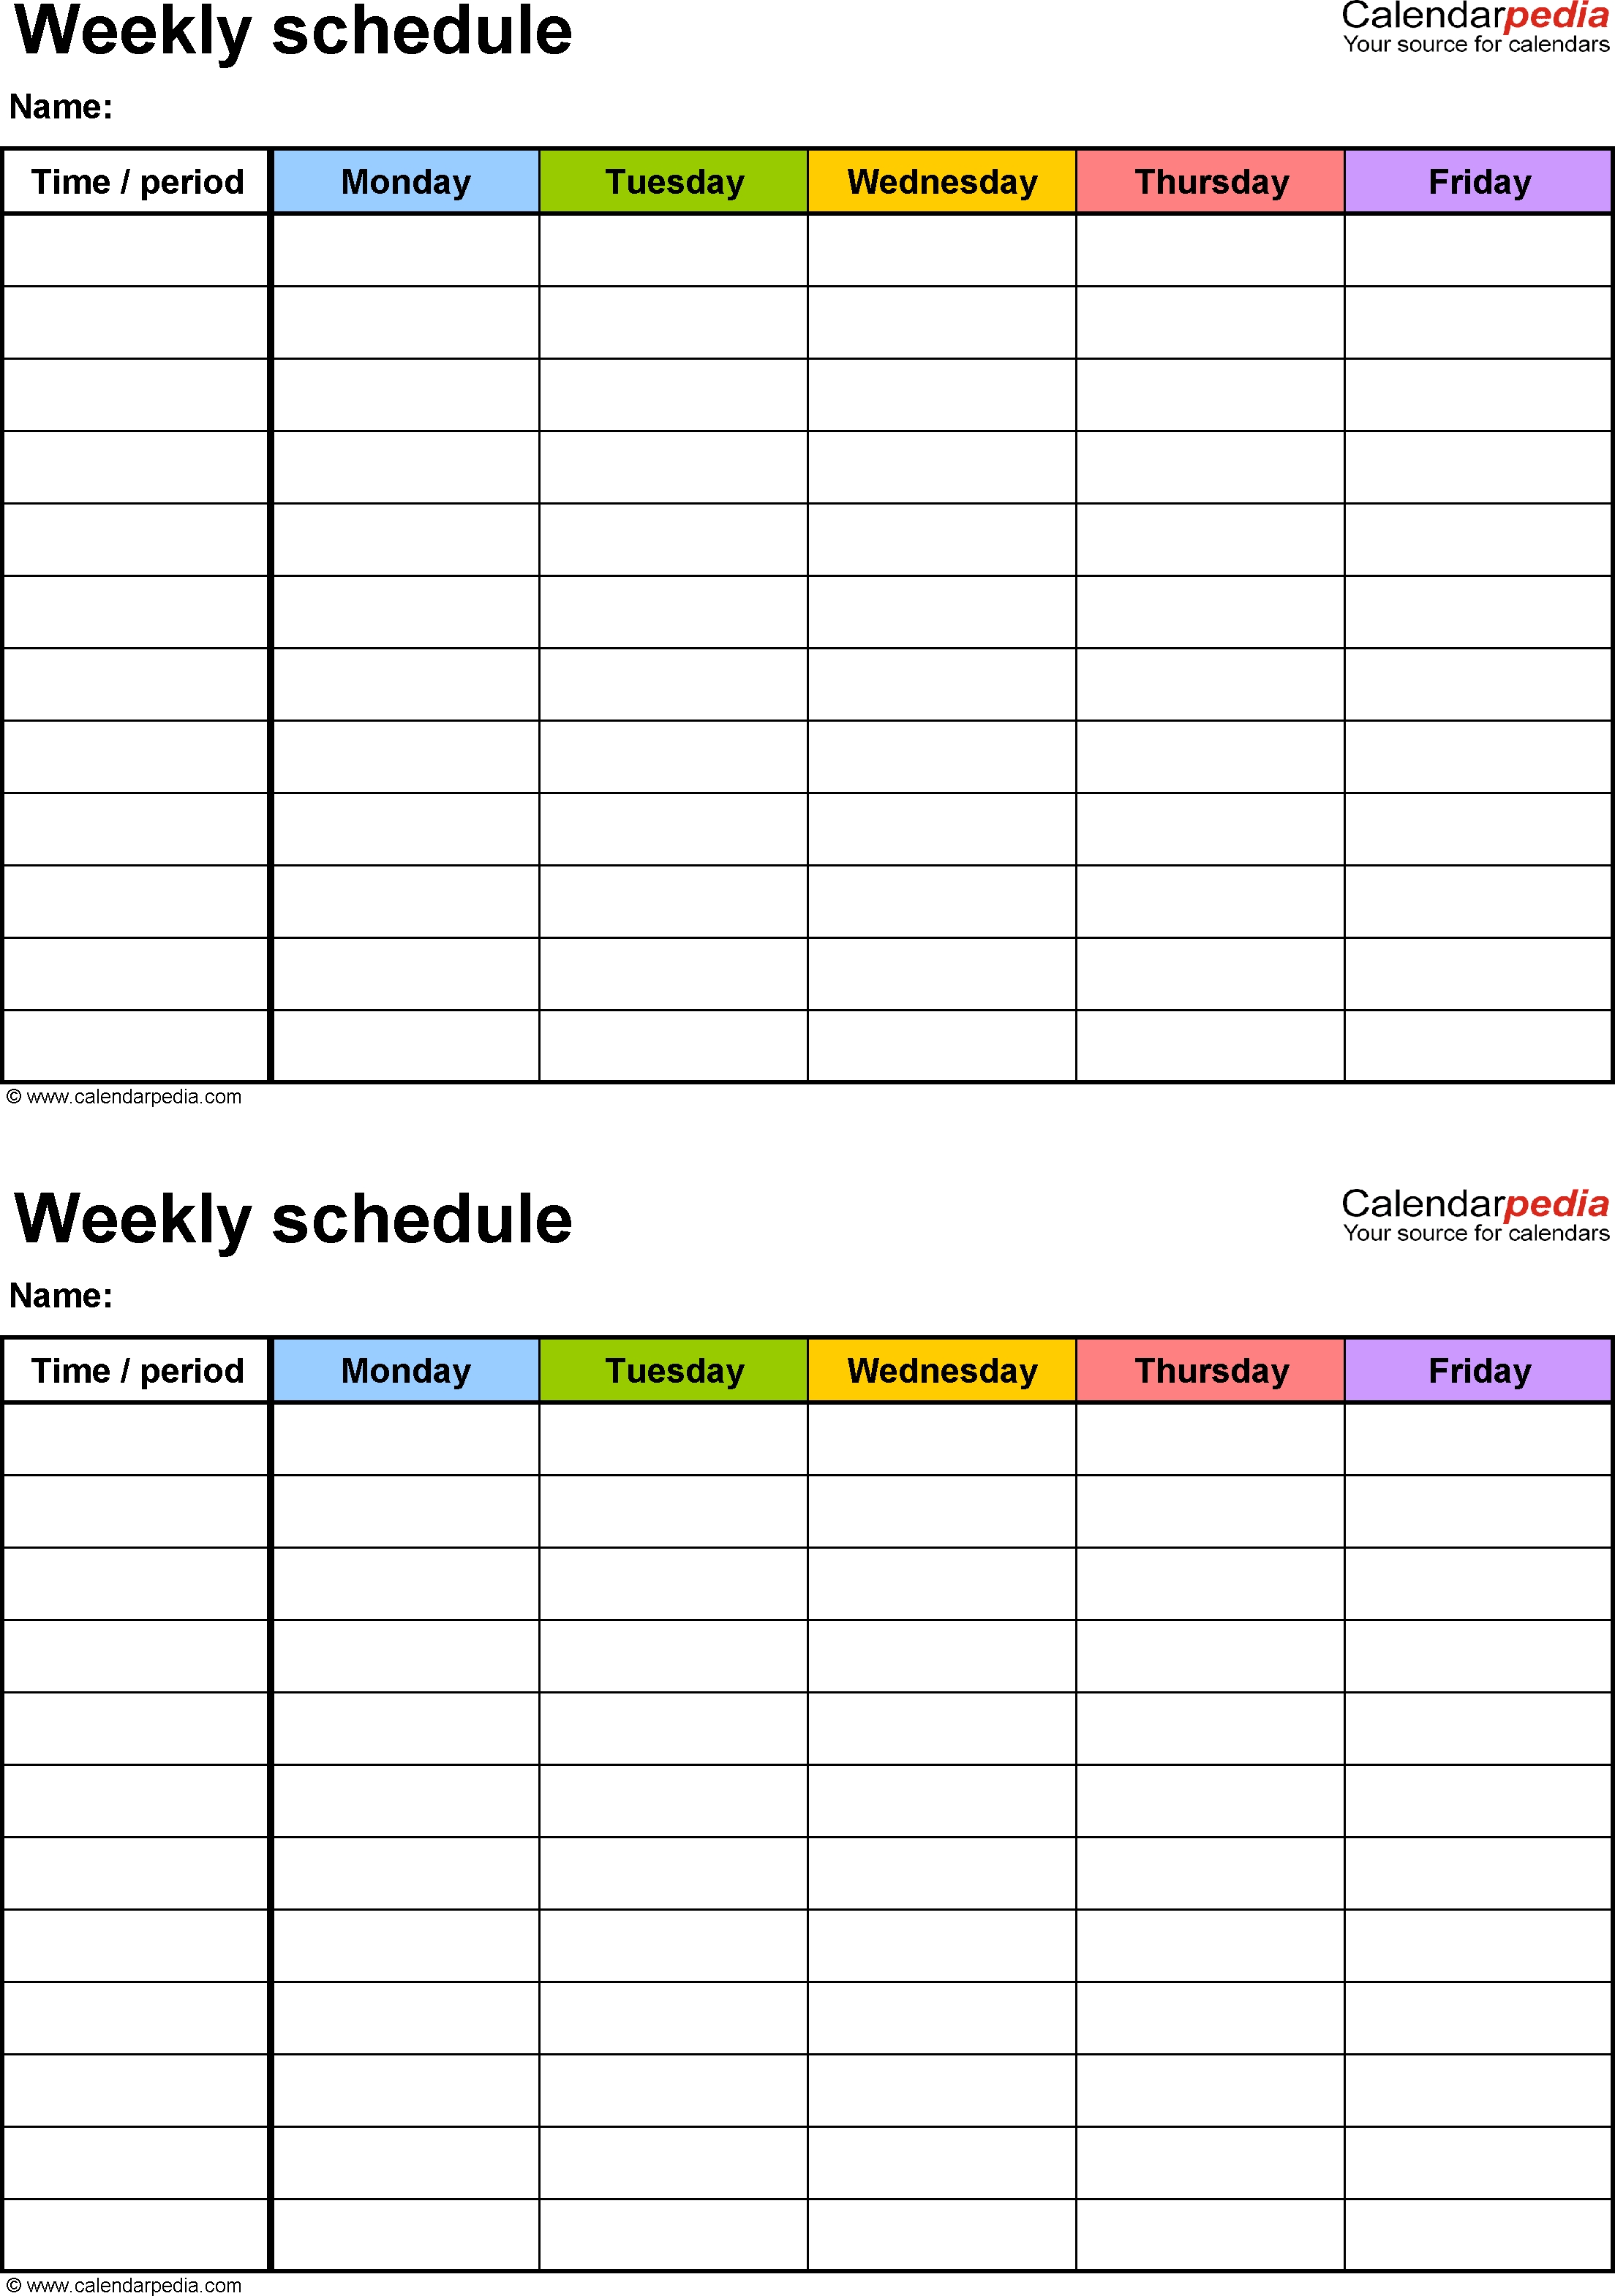 Free Weekly Schedule Templates For Word - 18 Templates for Free One Week Schedule Template